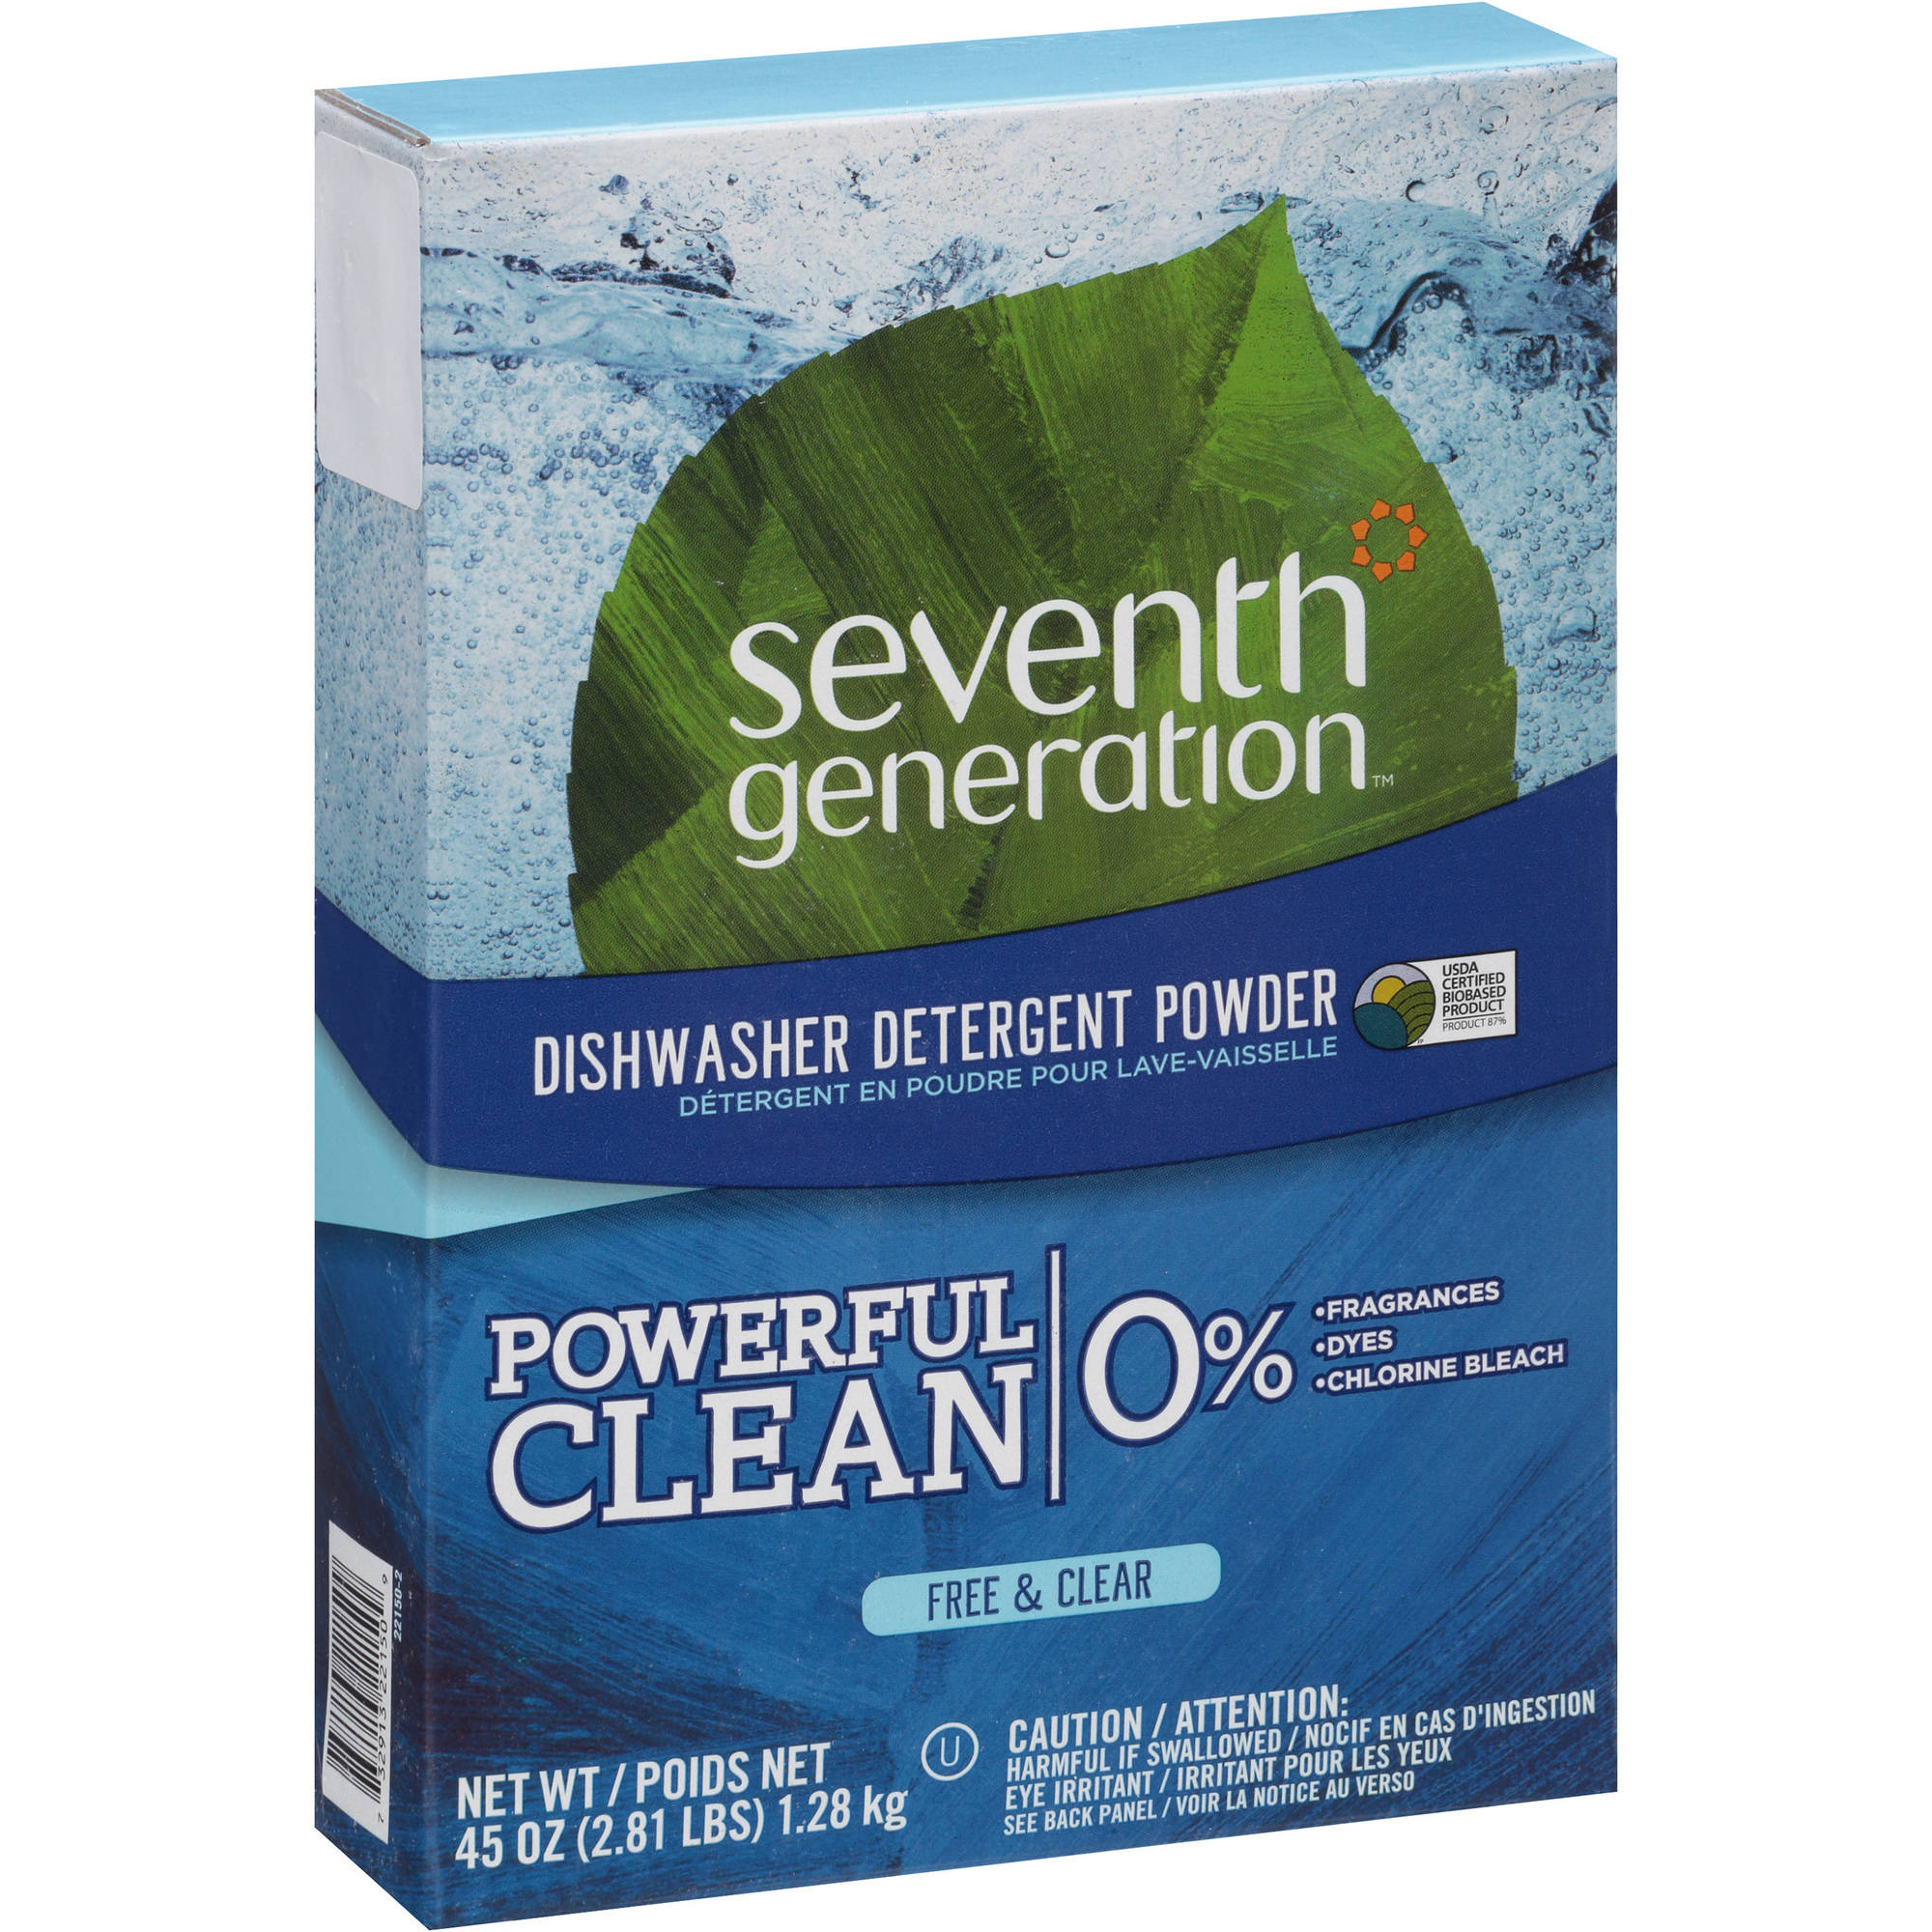 Seventh Generation Free & Clear Dishwasher Detergent Powder, 45 oz